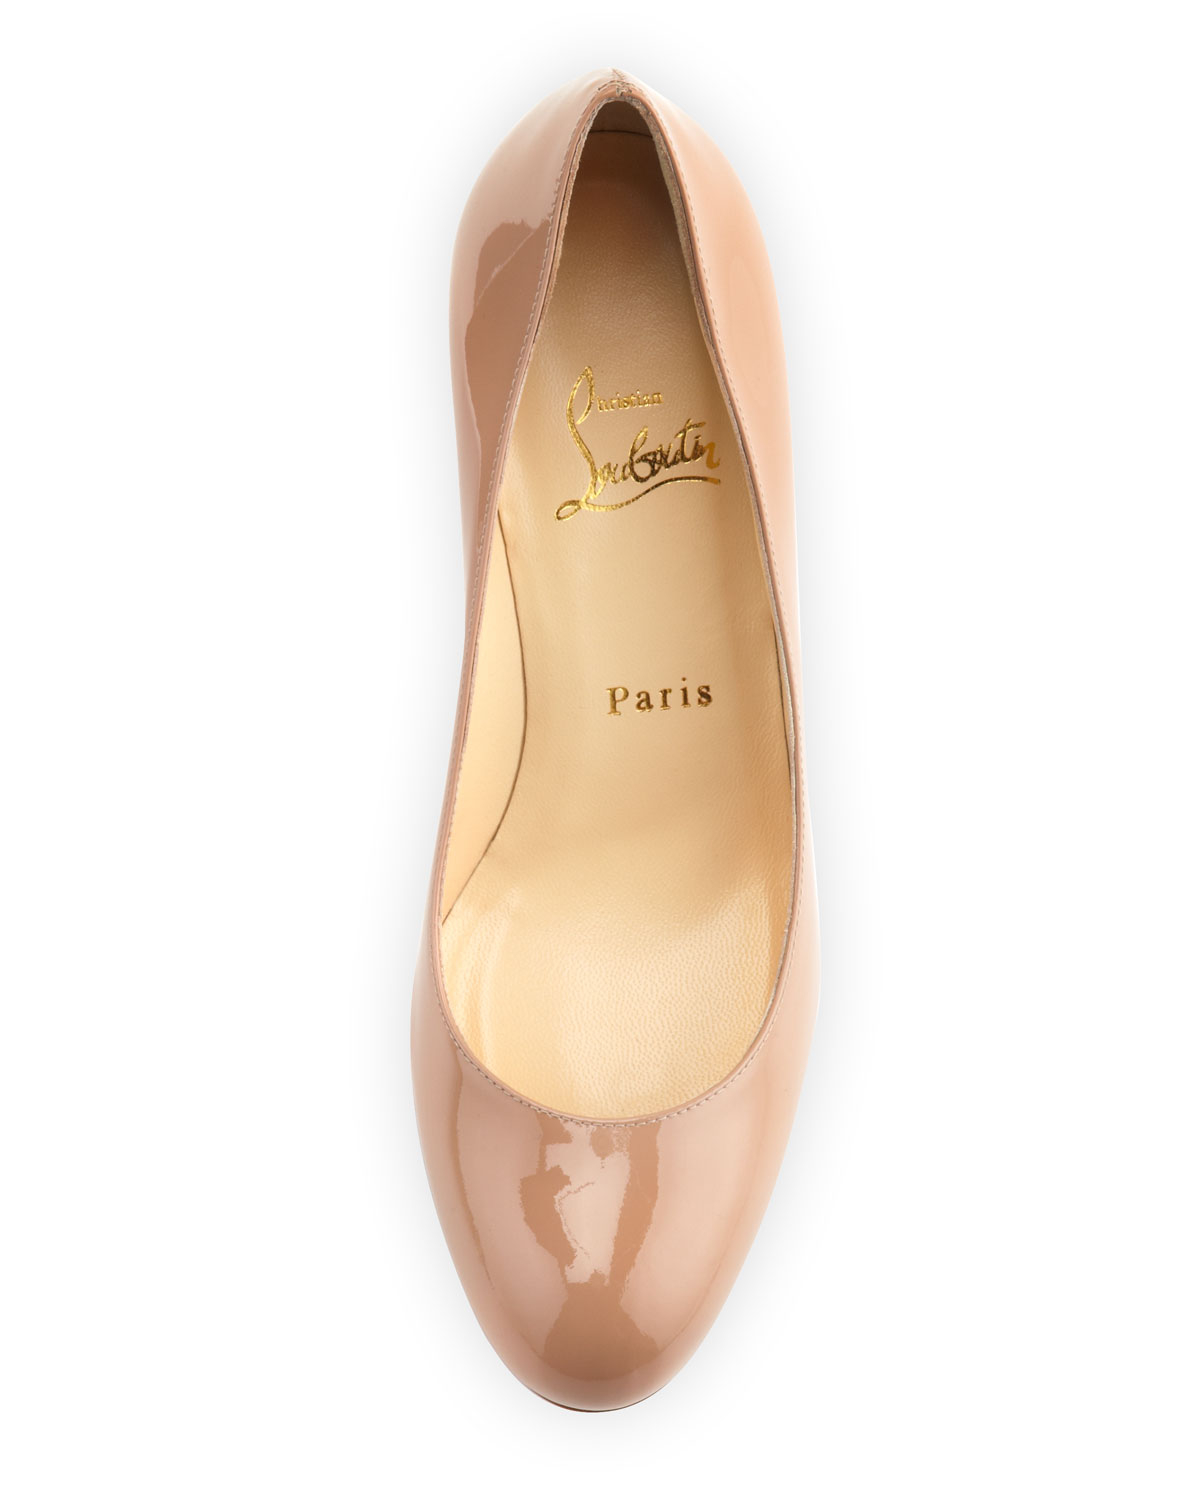 Christian louboutin Simple Patent Red Sole Pump Nude in Beige ...